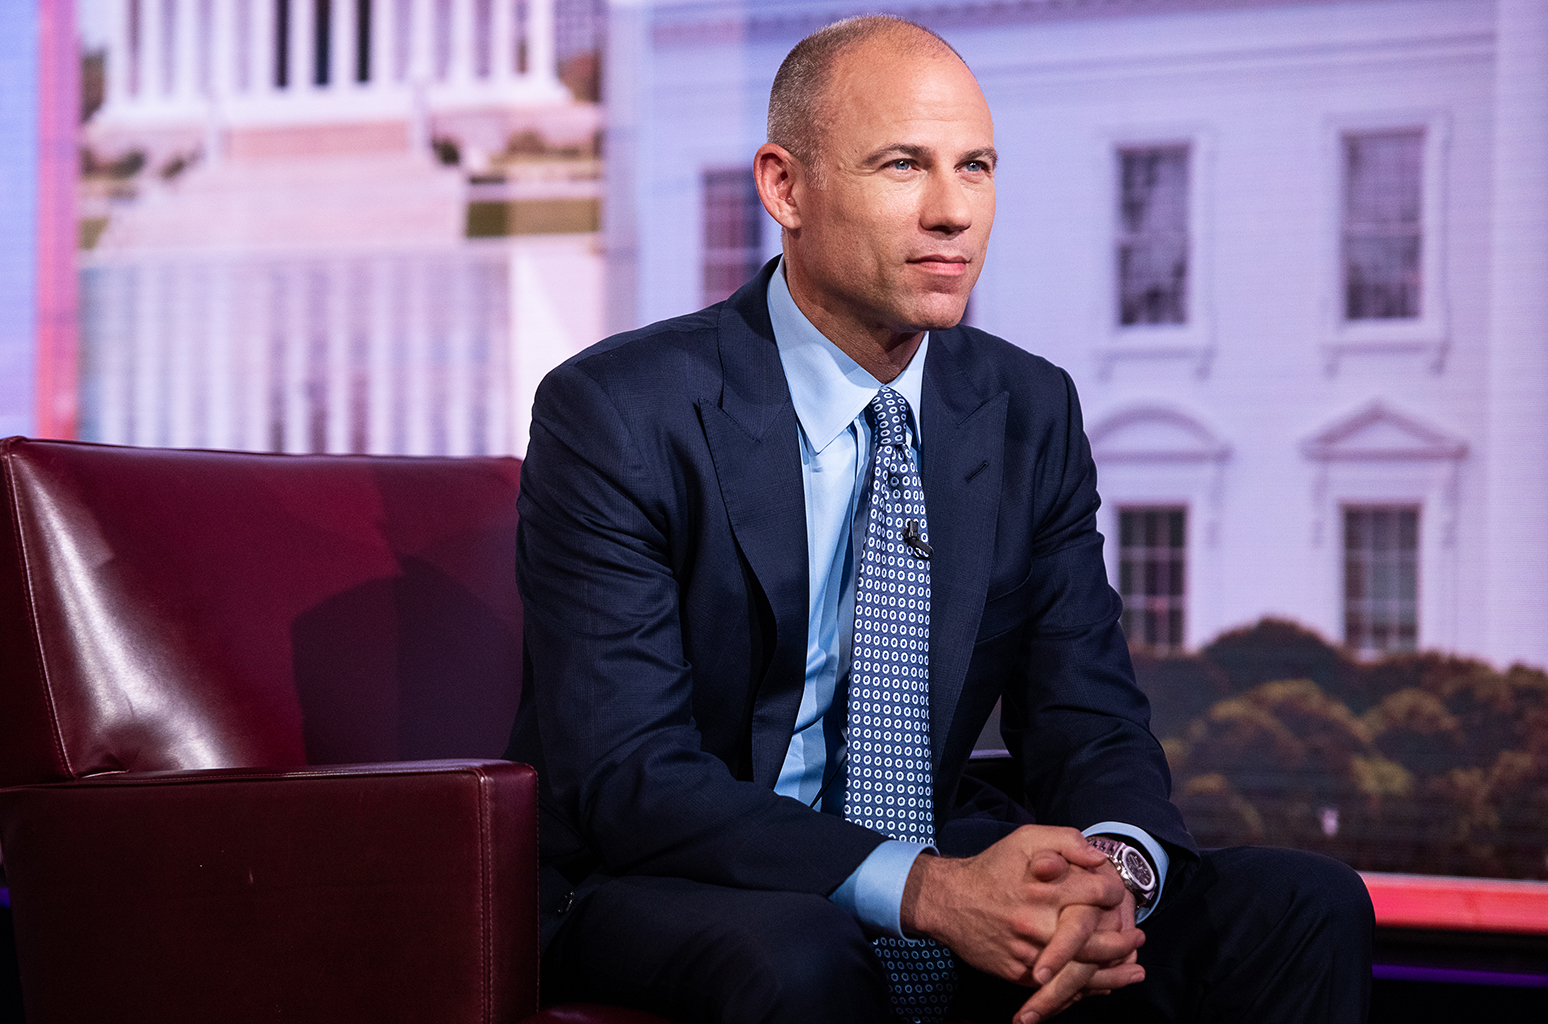 Michael Avenatti faces 36 charges in new indictment